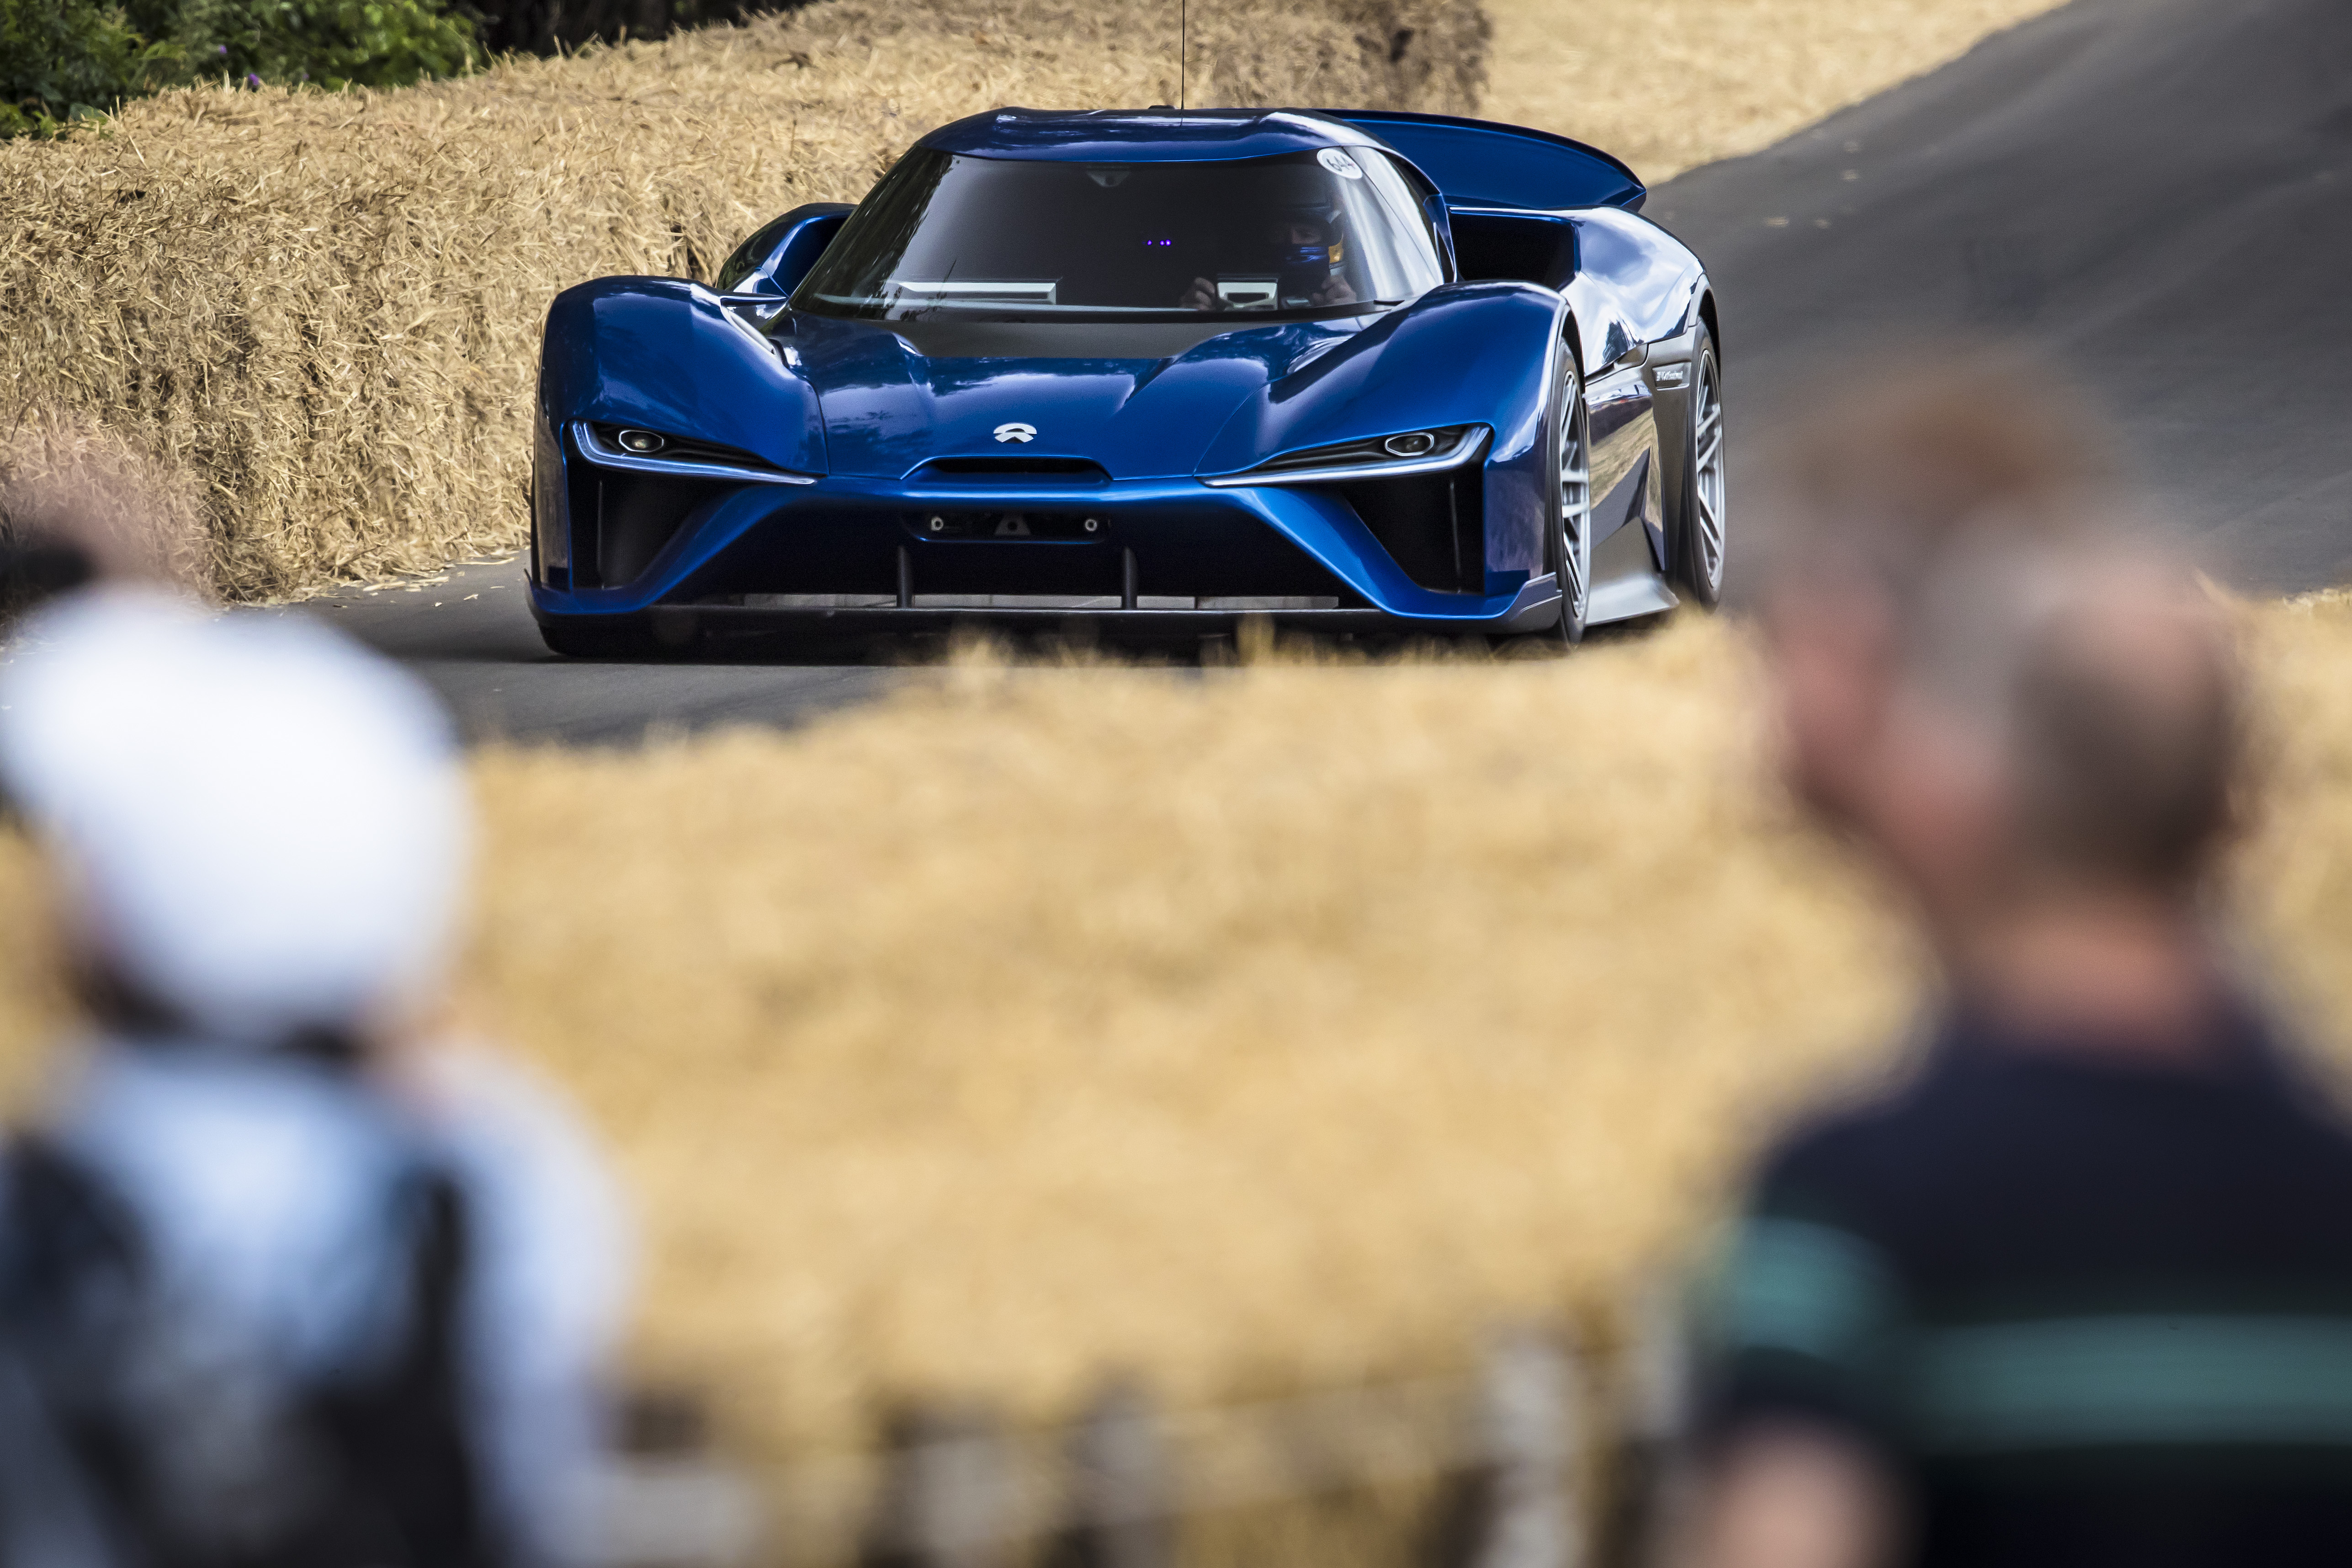 GOODWOOD FESTIVAL OF SPEED: WHO WILL BECOME THE KING OF THE HILL?